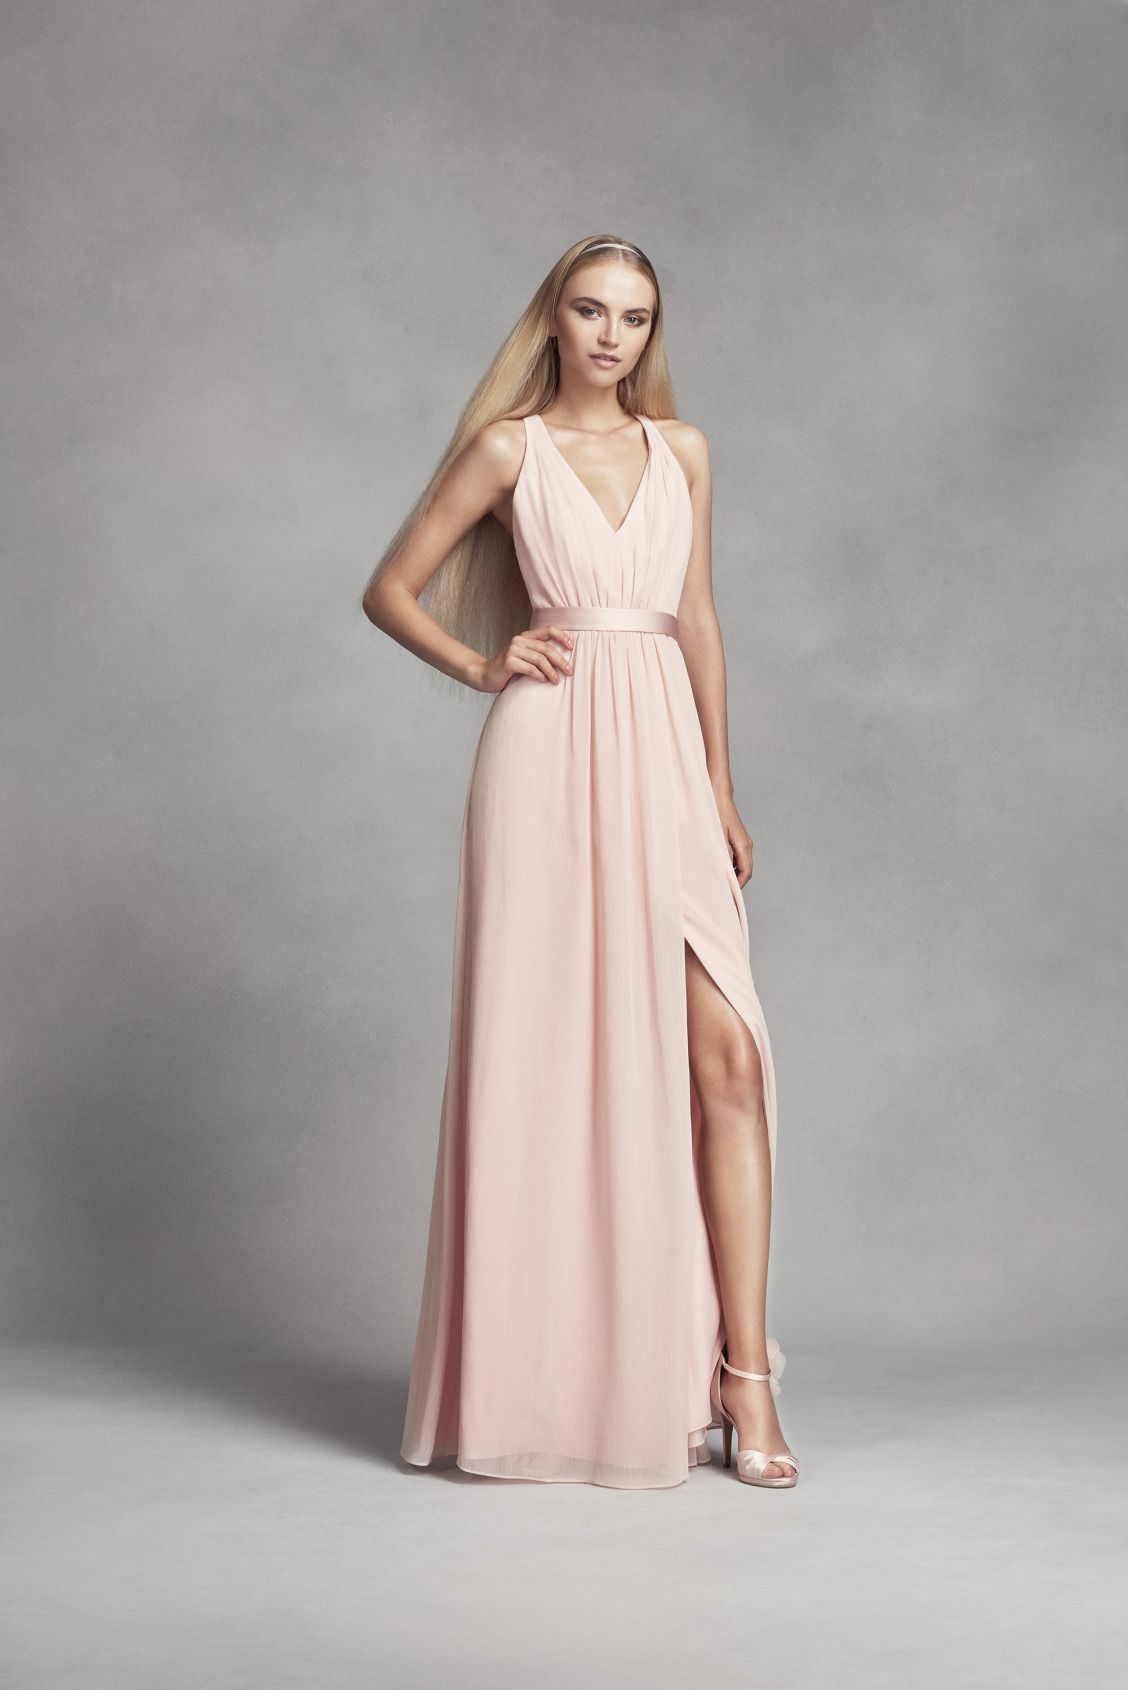 de9a0ca59c9 Long Petal Pink Halter Chiffon Dress with Low Crisscross Back WHITE by Vera  Wang bridesmaid dress available at David s Bridal